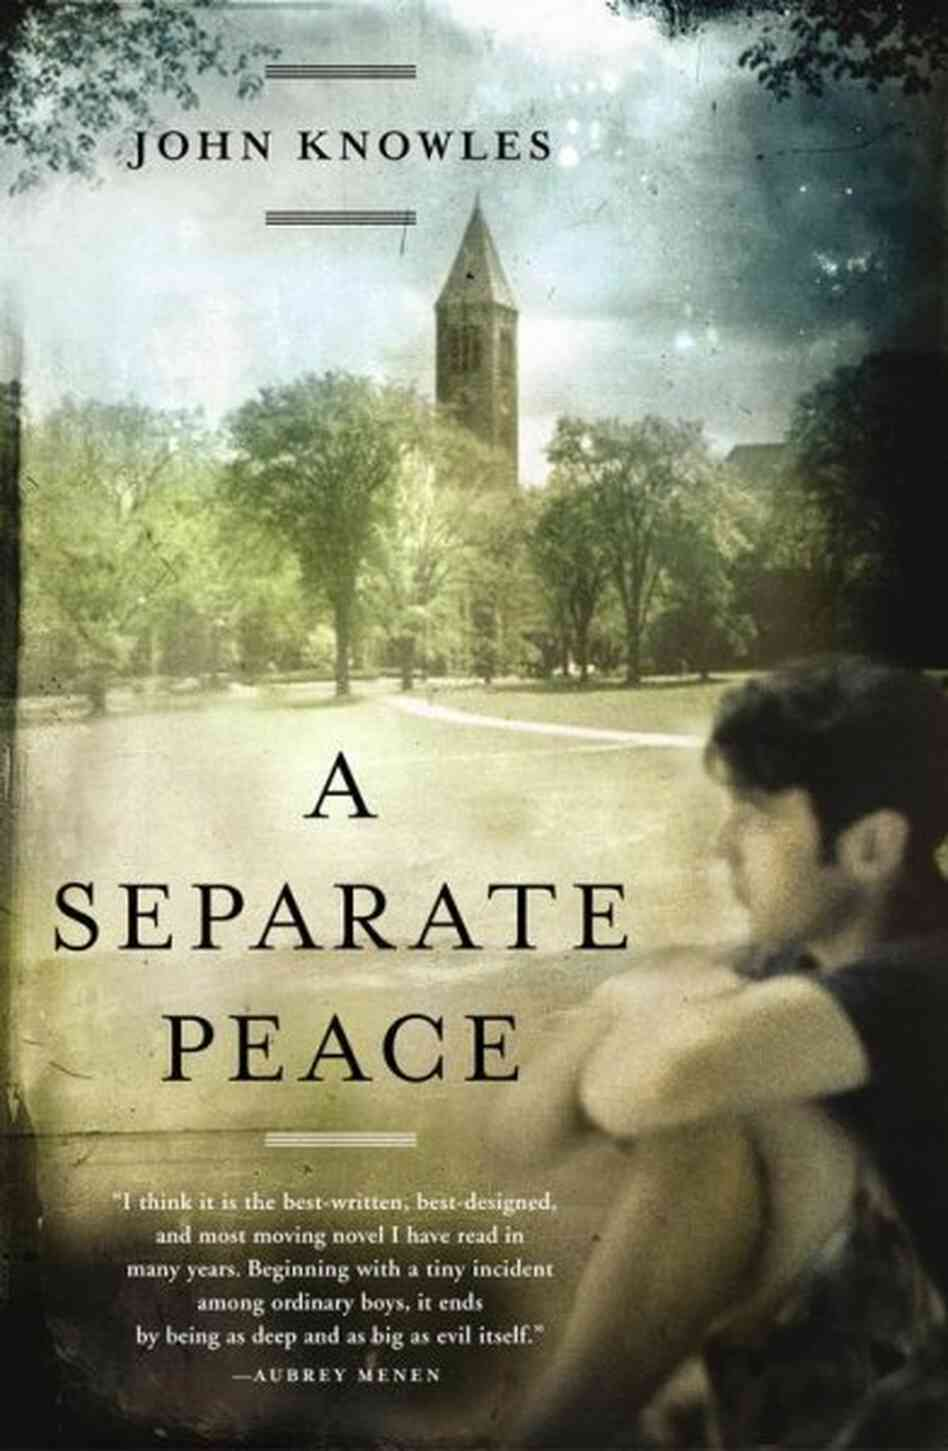 http://www.amazon.com/Separate-Peace-John-Knowles-ebook/dp/B00JN7BNR0/ref=sr_1_1_ha?s=digital-text&ie=UTF8&qid=1458788282&sr=1-1&keywords=a+separate+peace